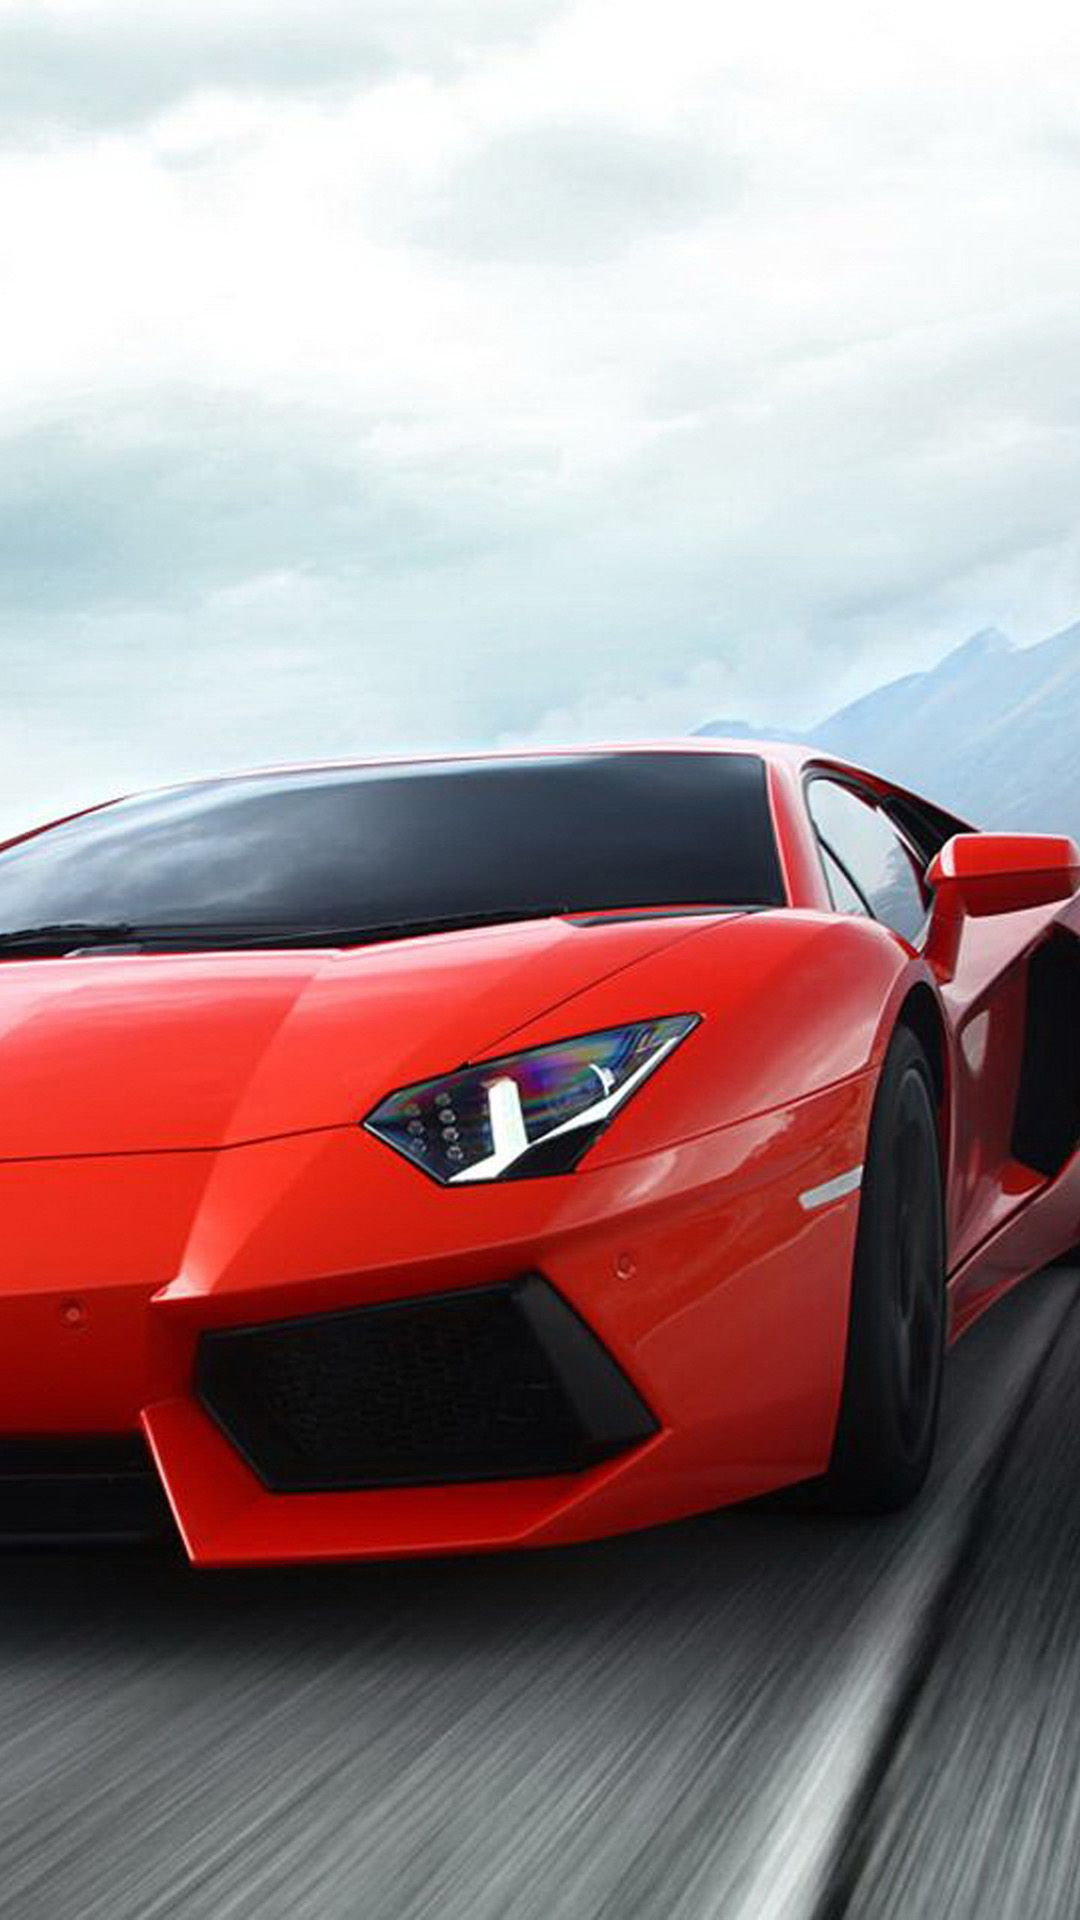 Red Lamborghini Wallpapers Top Free Red Lamborghini Backgrounds